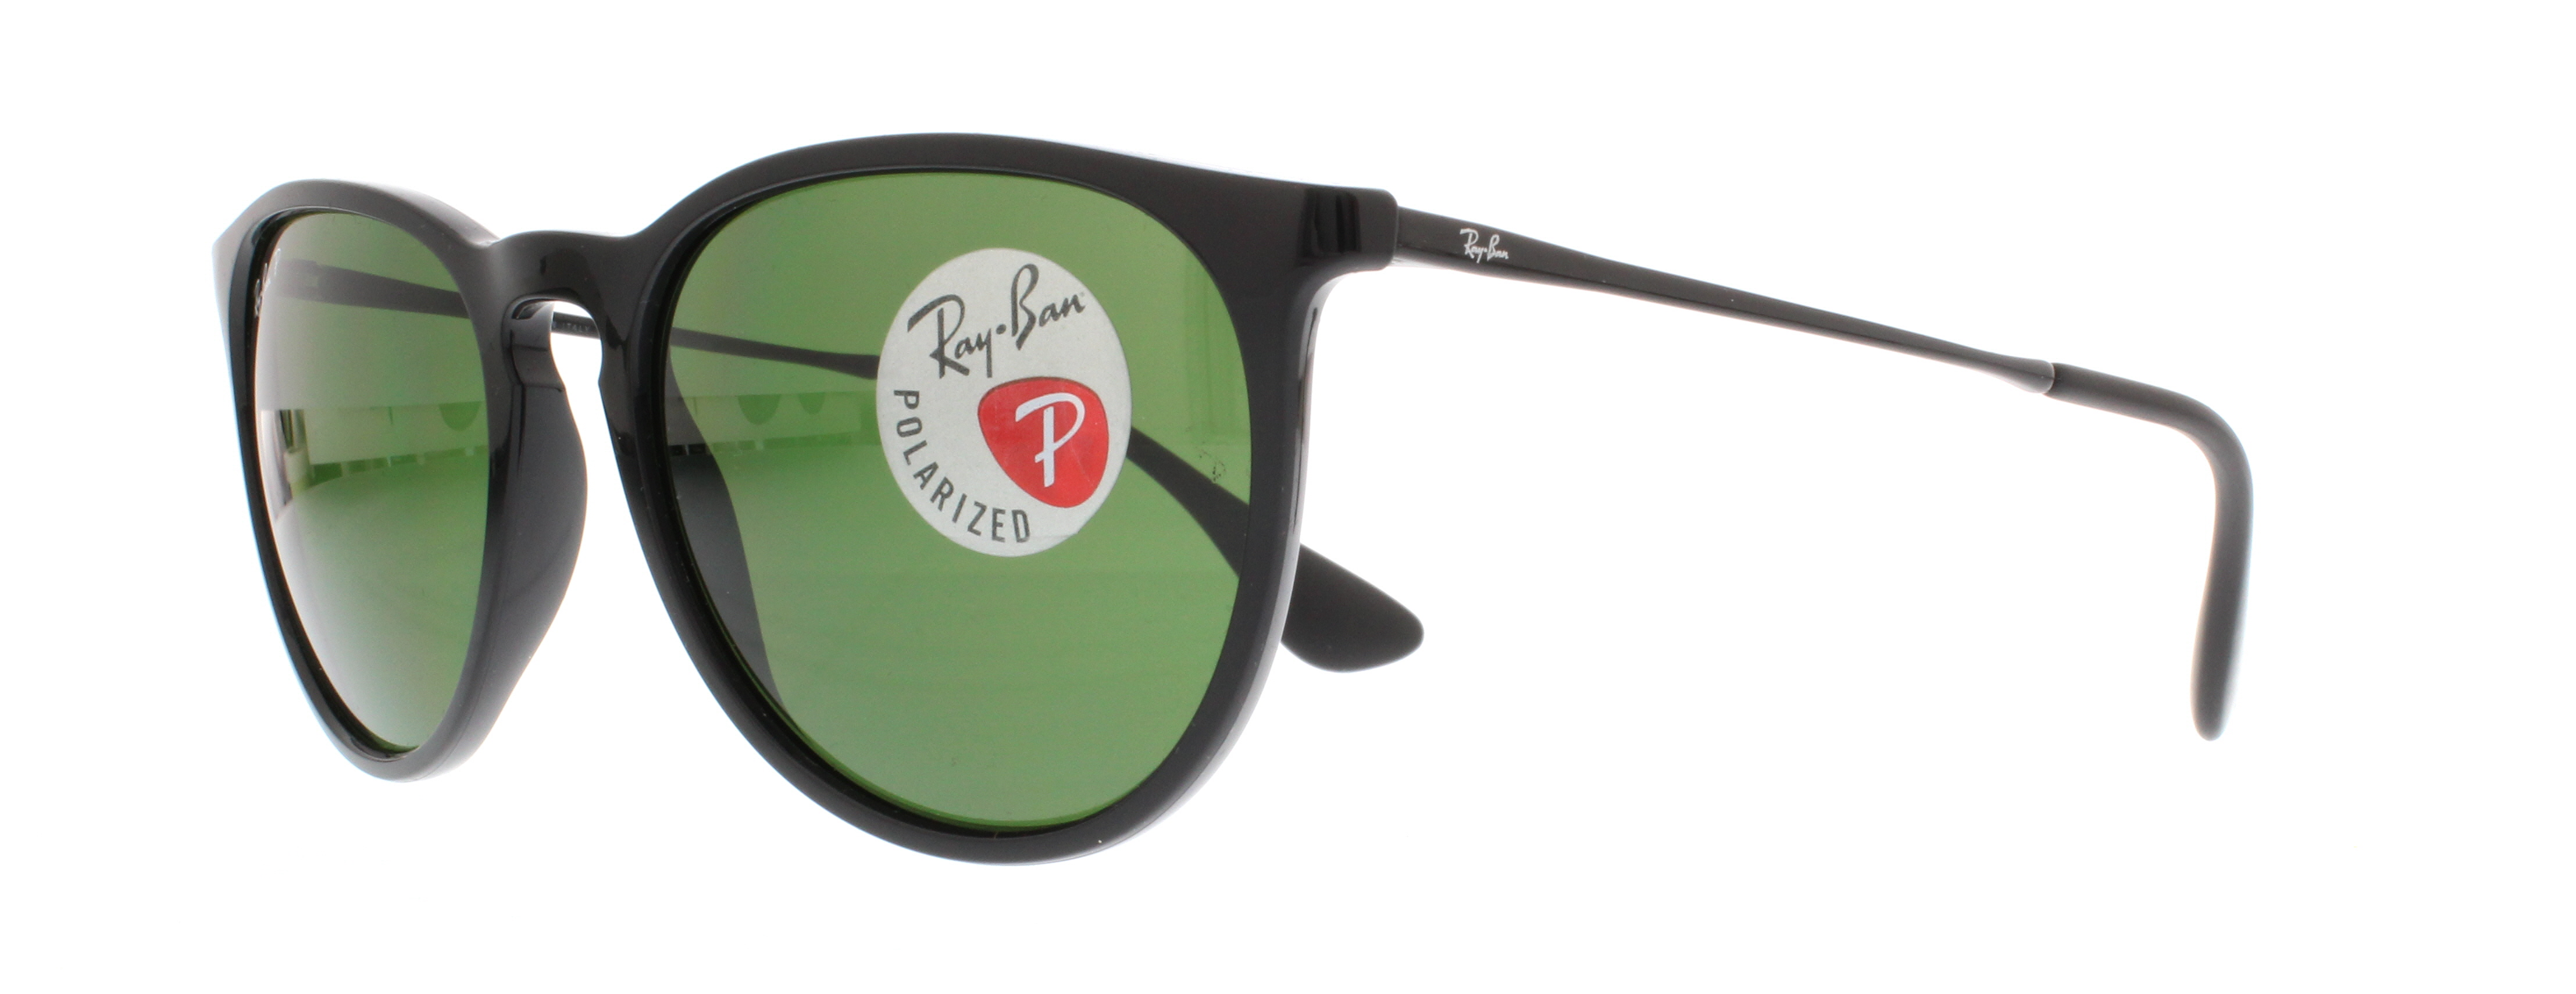 Picture of Ray Ban RB4171 Erika